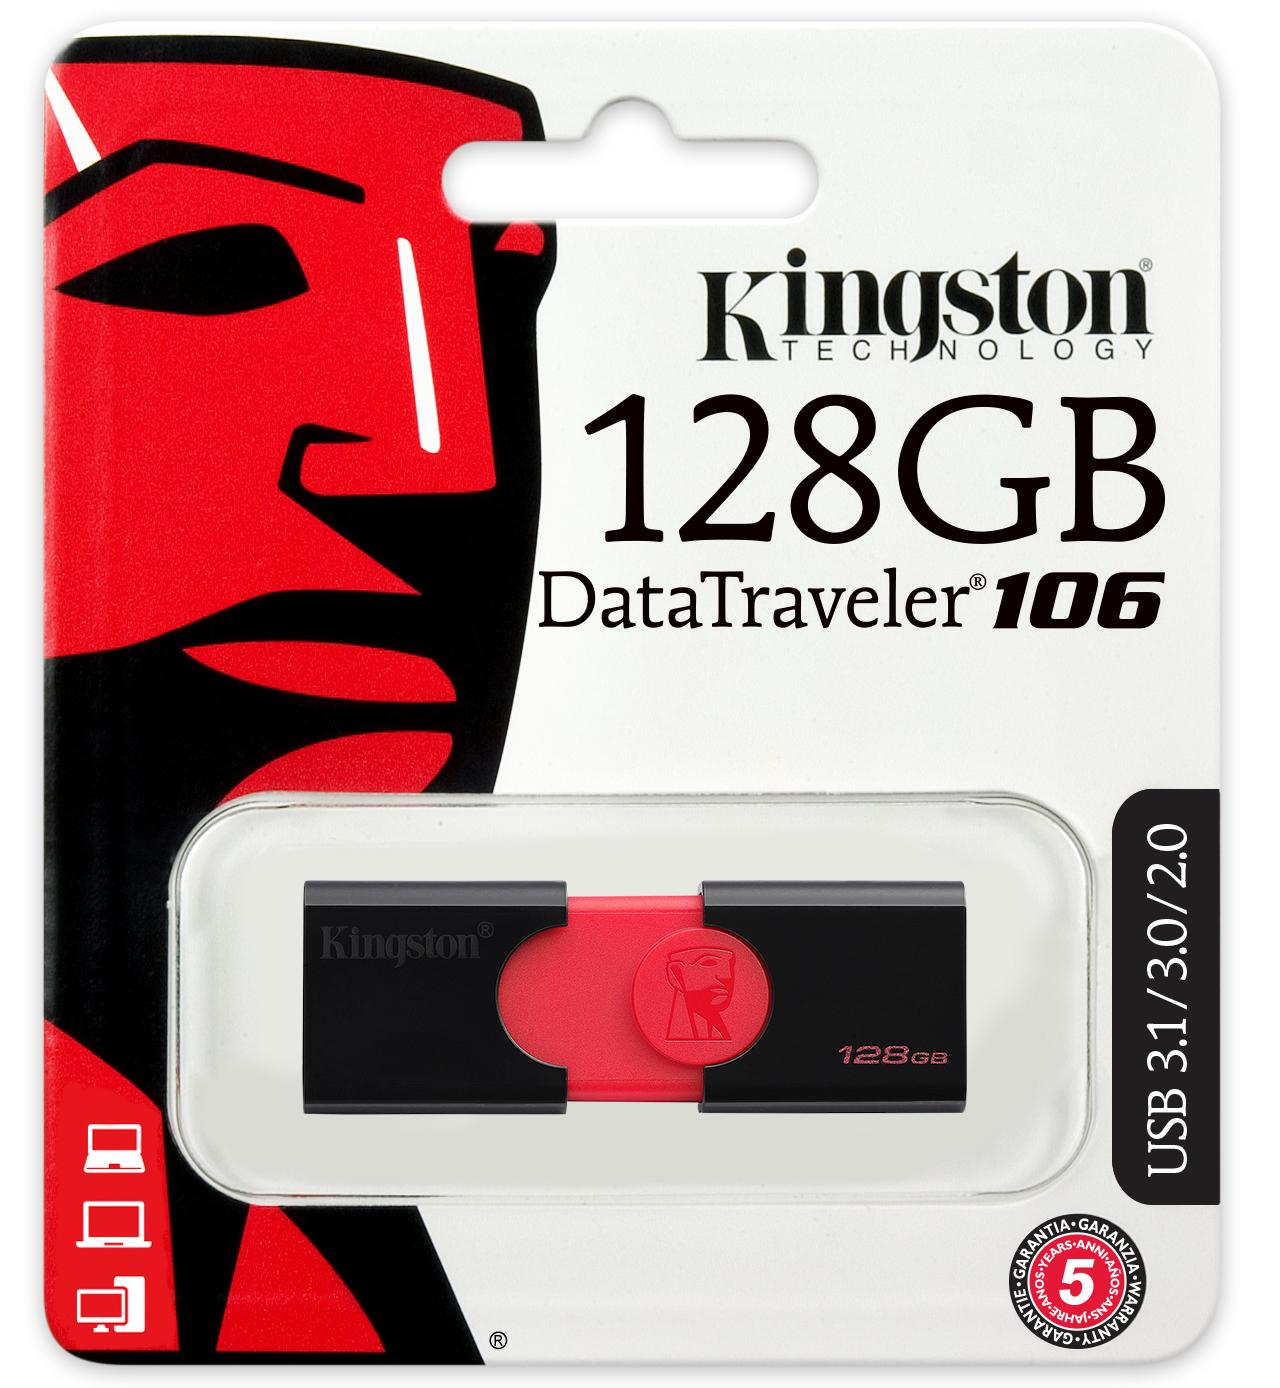 Clé USB 3.0 Kingston DataTraveler 106 128 Go , informatique ile de la réunion